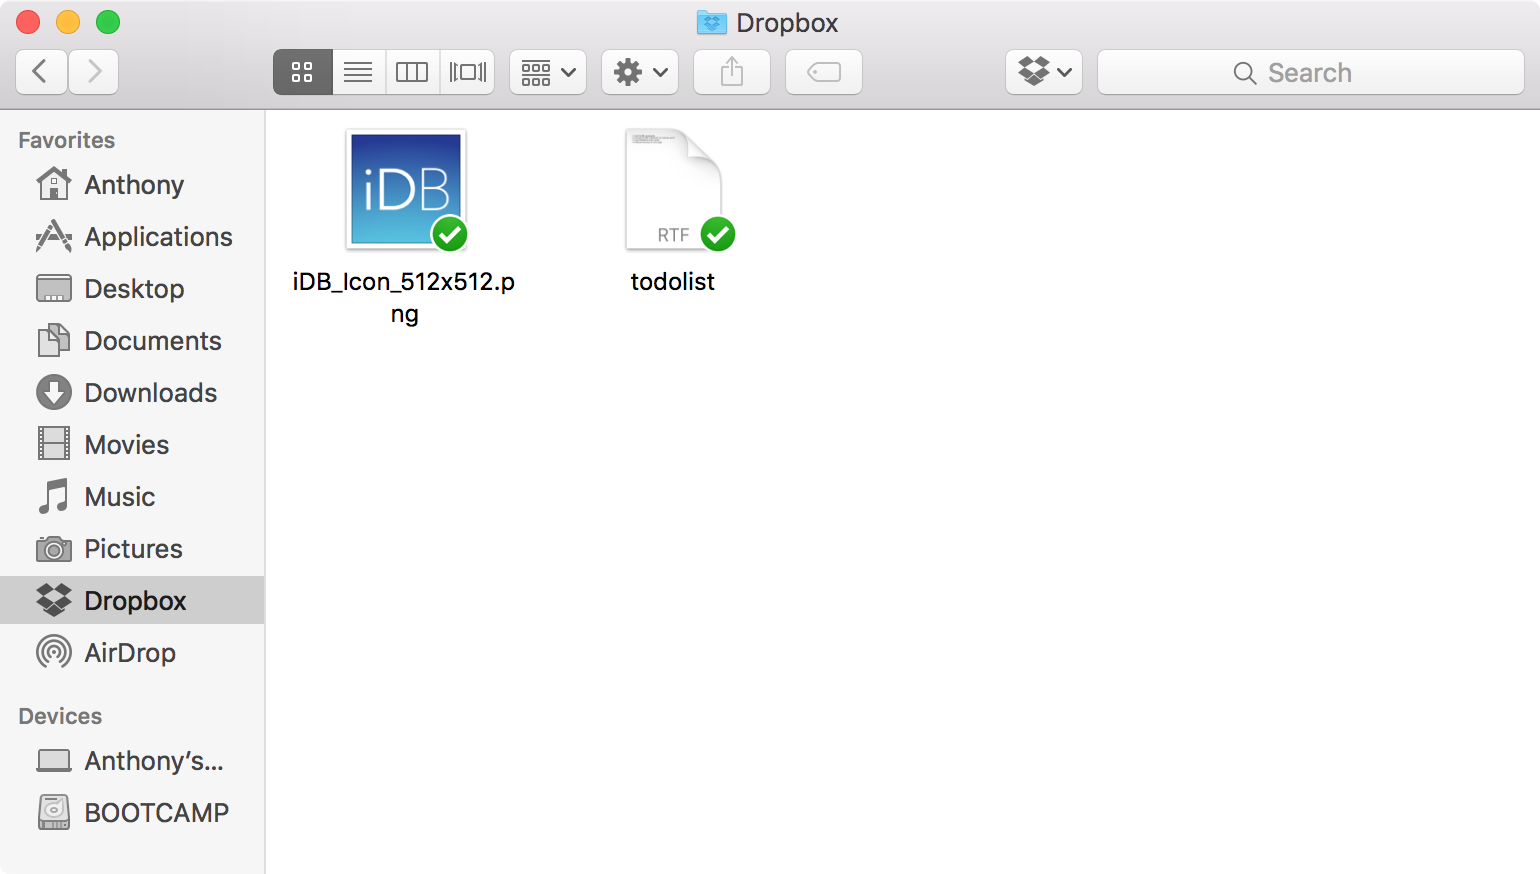 Dropbox Finder window